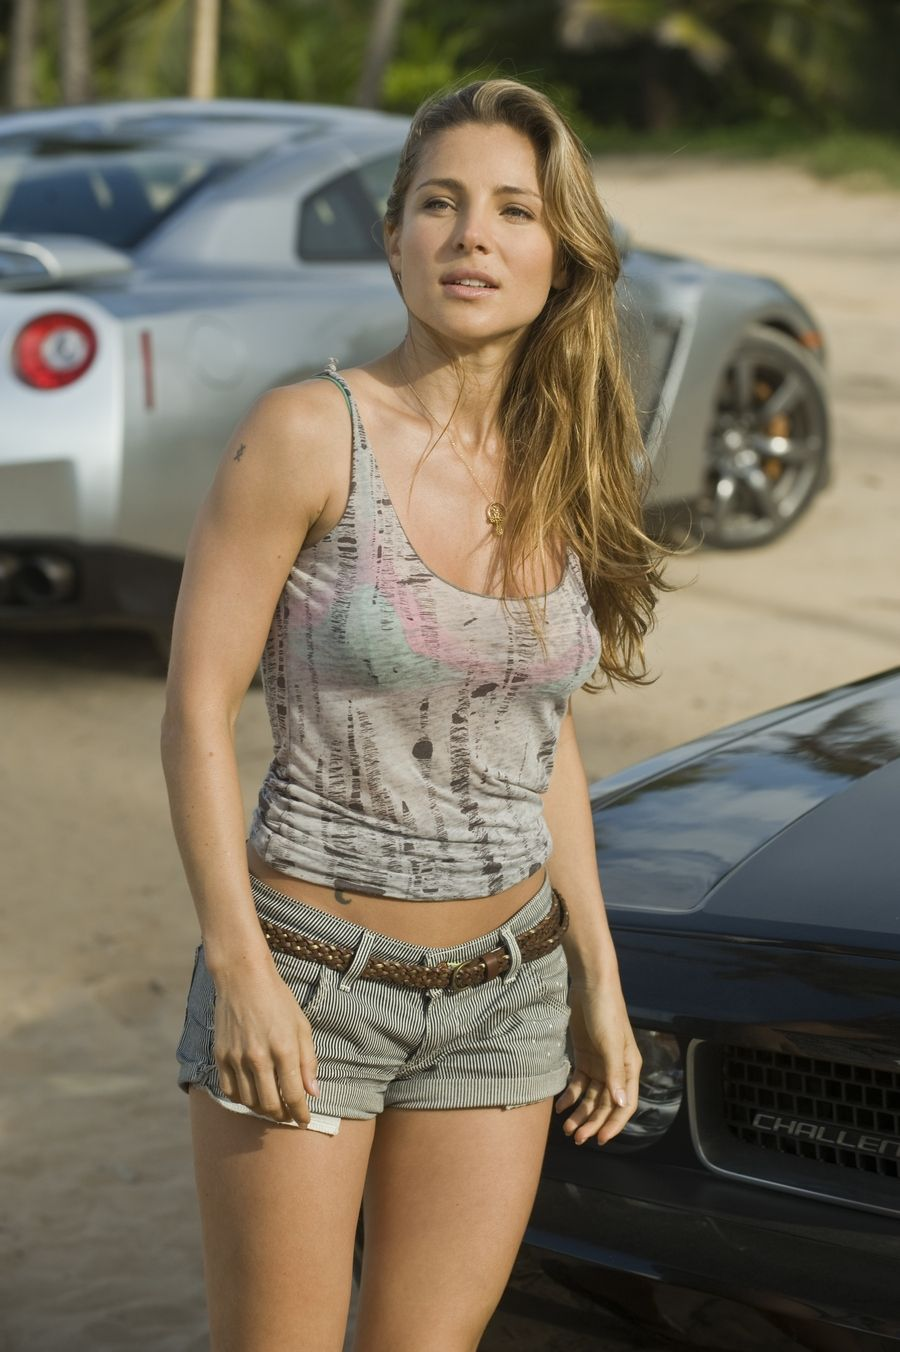 Fast And Furious 6 Hot Hd Wallpaper Of Elsa Pataky